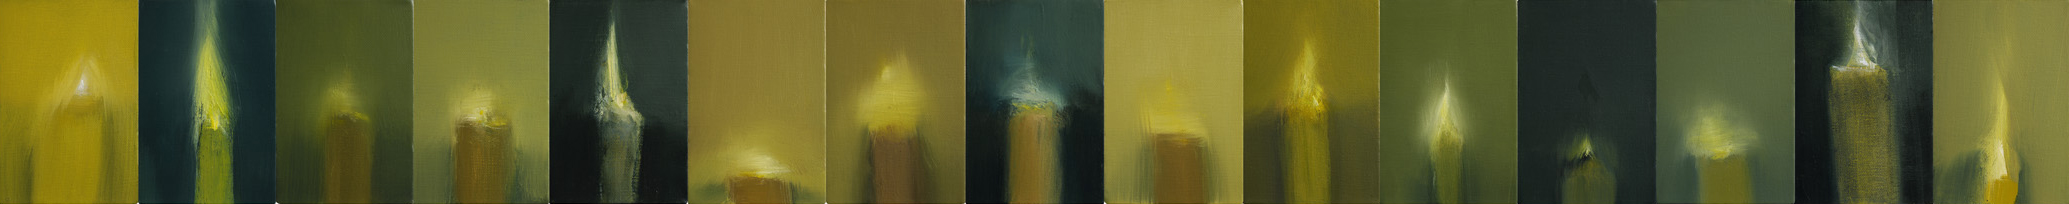 "Vanitas I & II, 2008. Oil on 15 canvas blocks, 152 x 1550mm (6"" x 61"")"